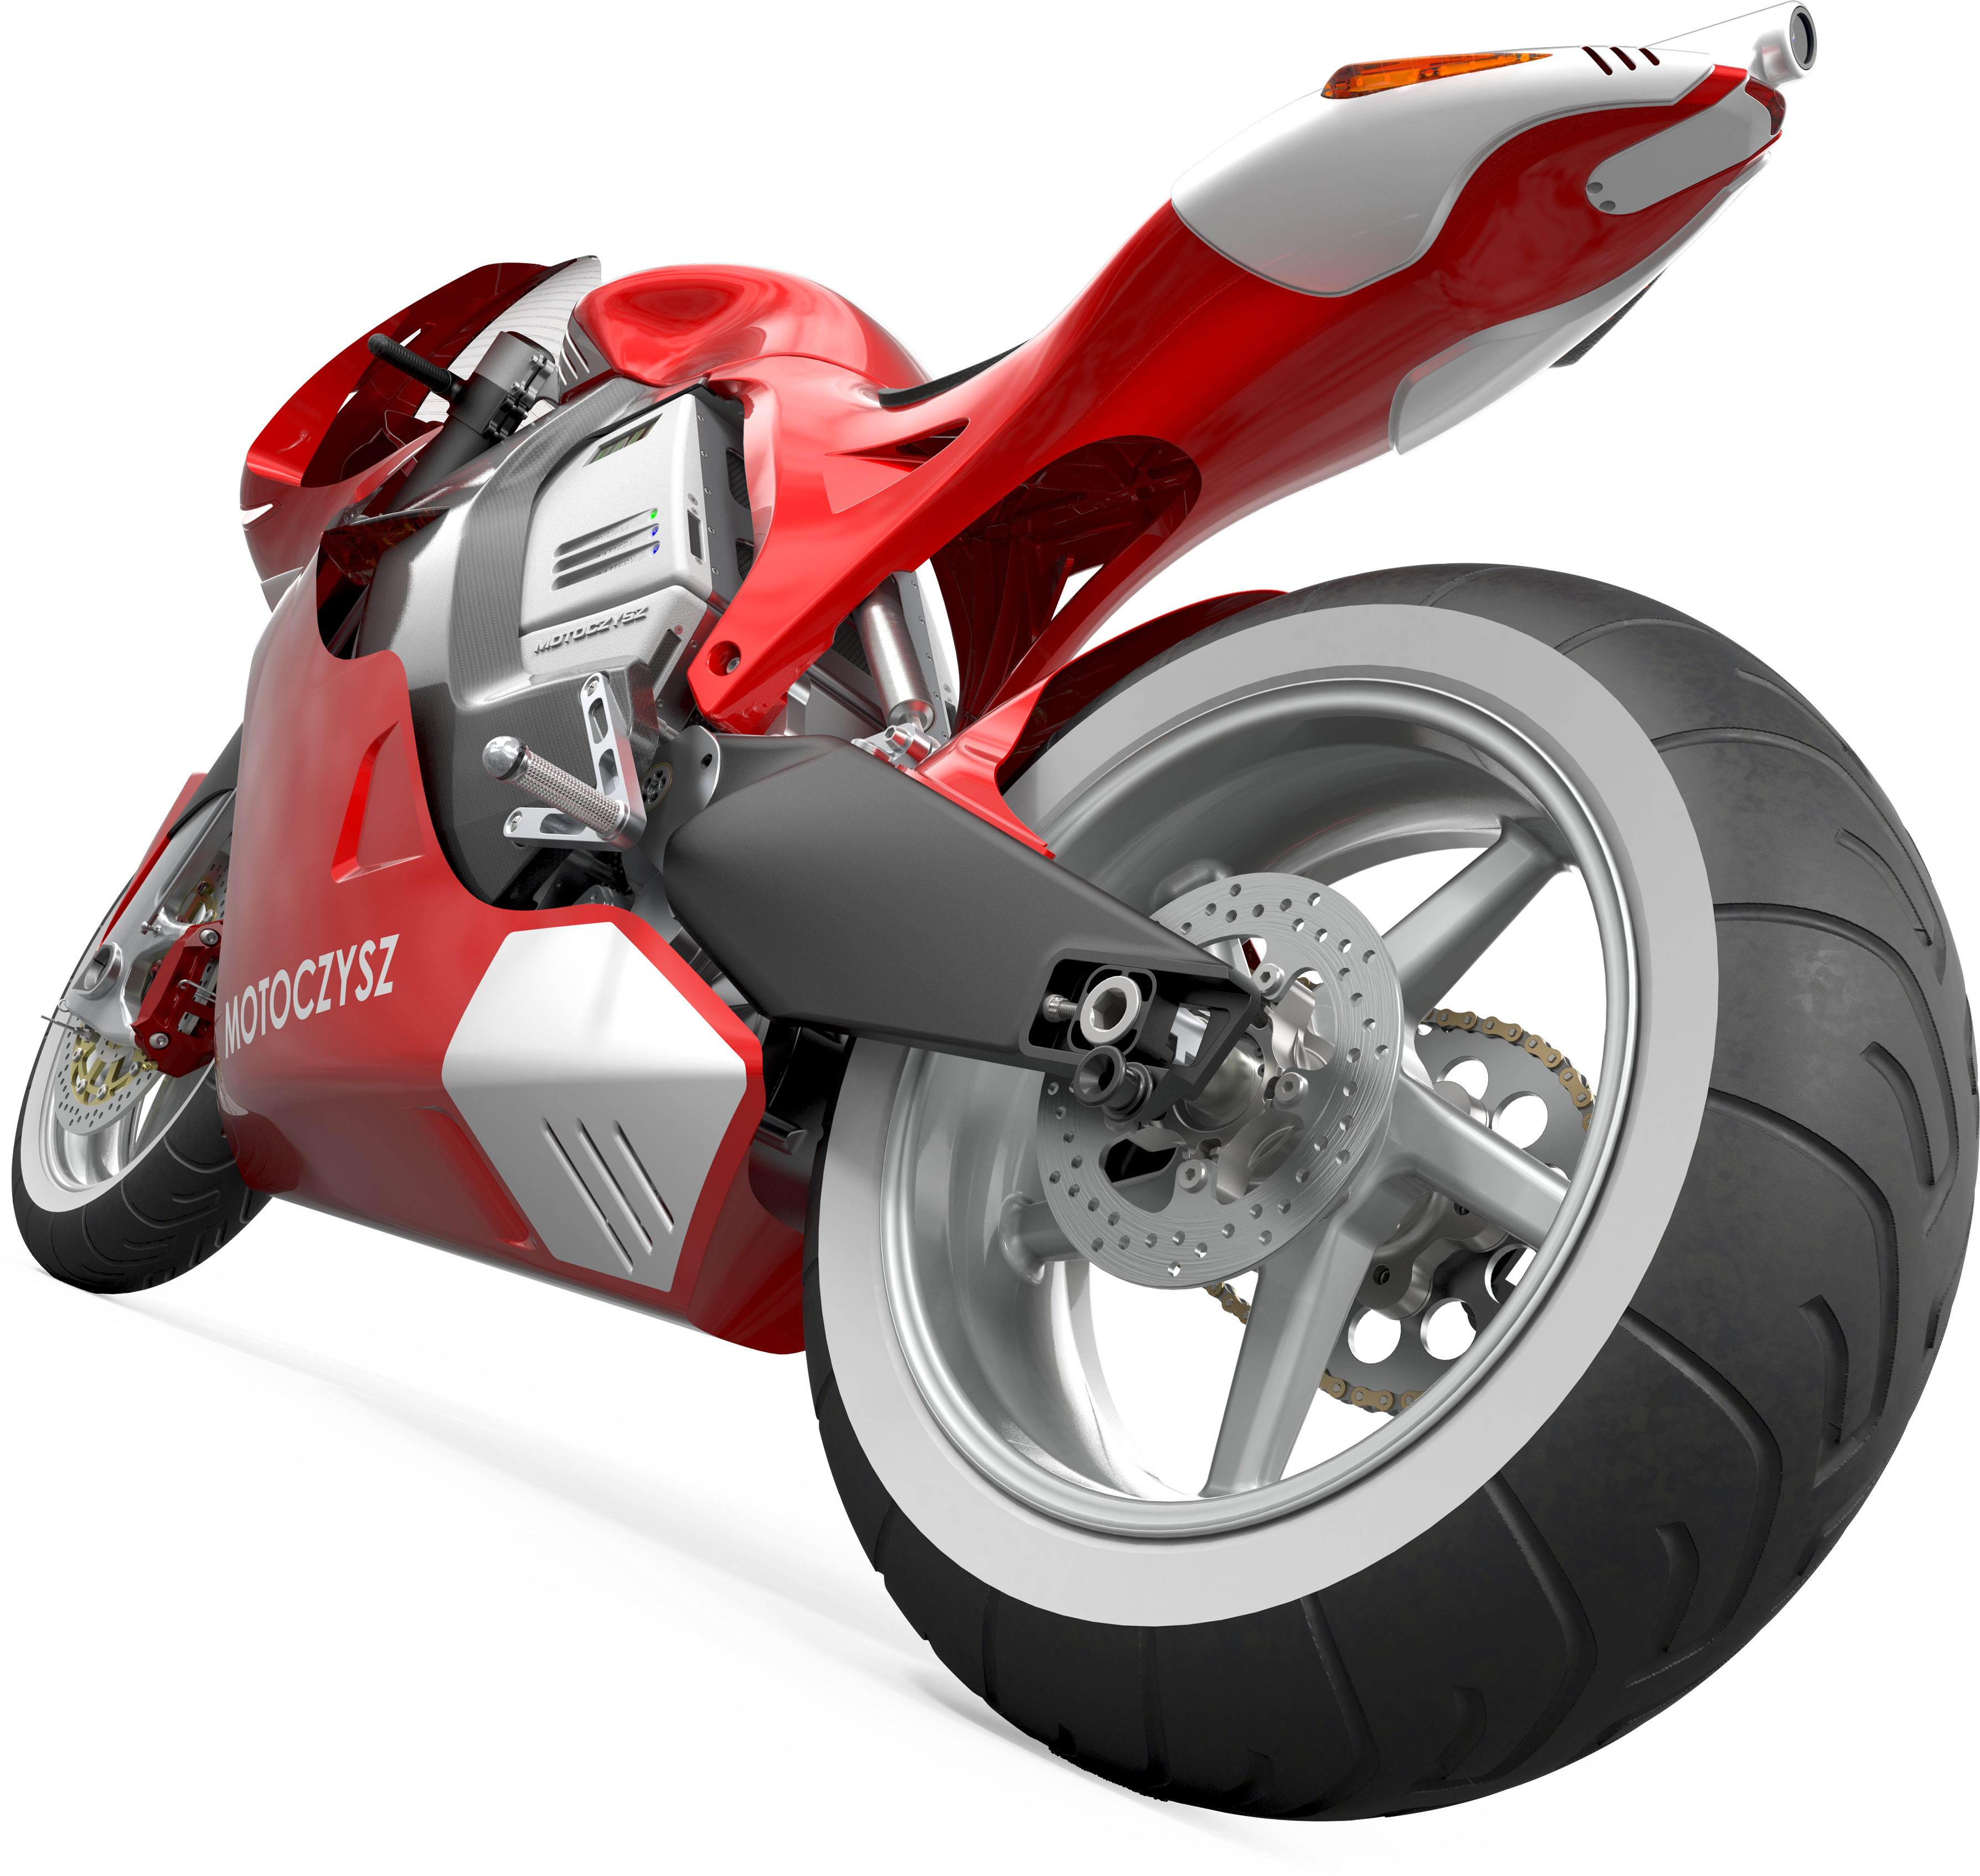 Png images free pictures. Motorcycle clipart land vehicle